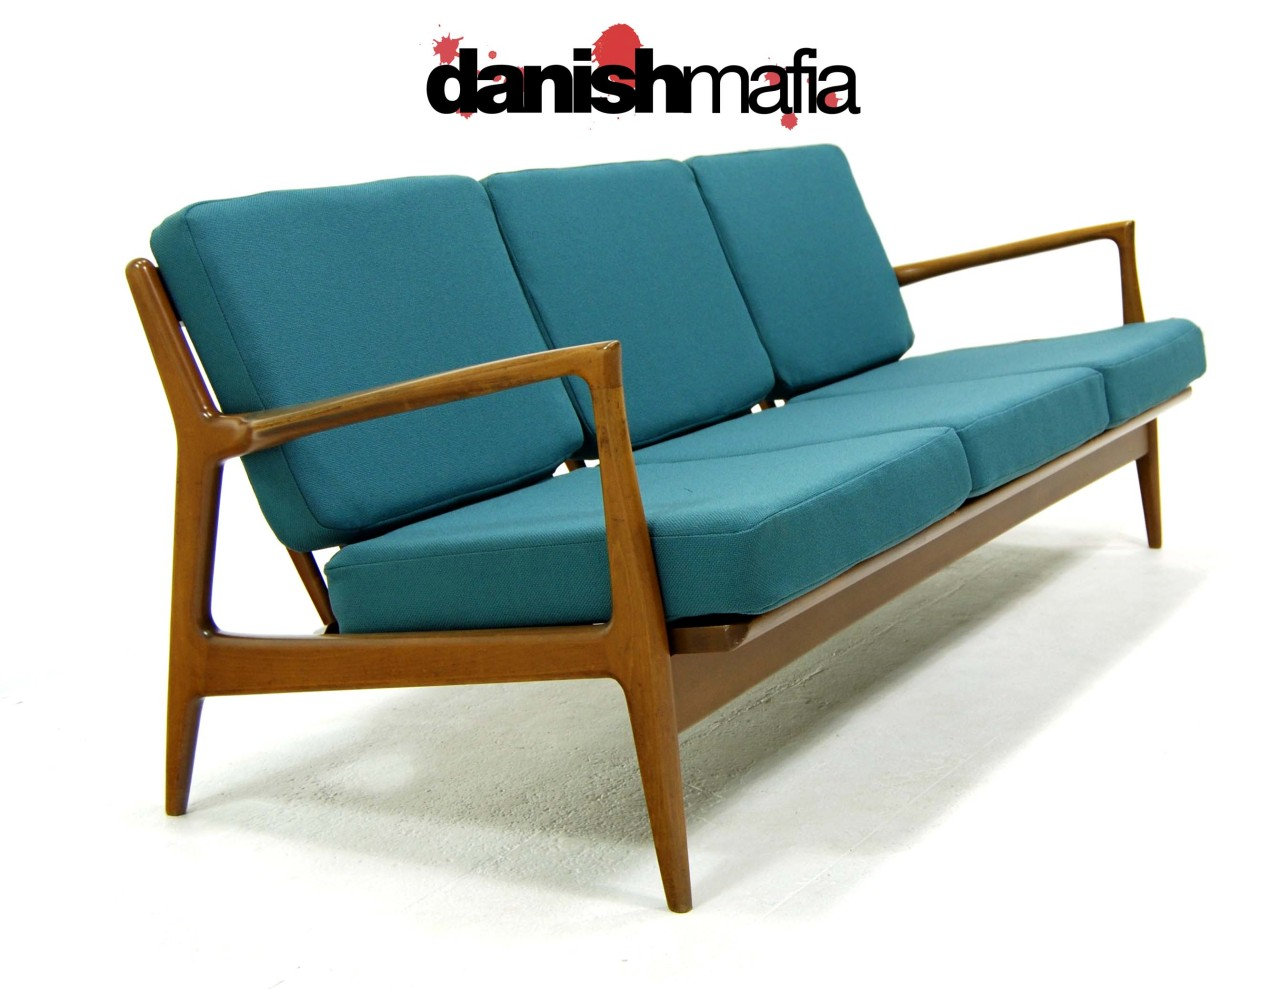 eames sofa  gallery image lautarii - previousnext